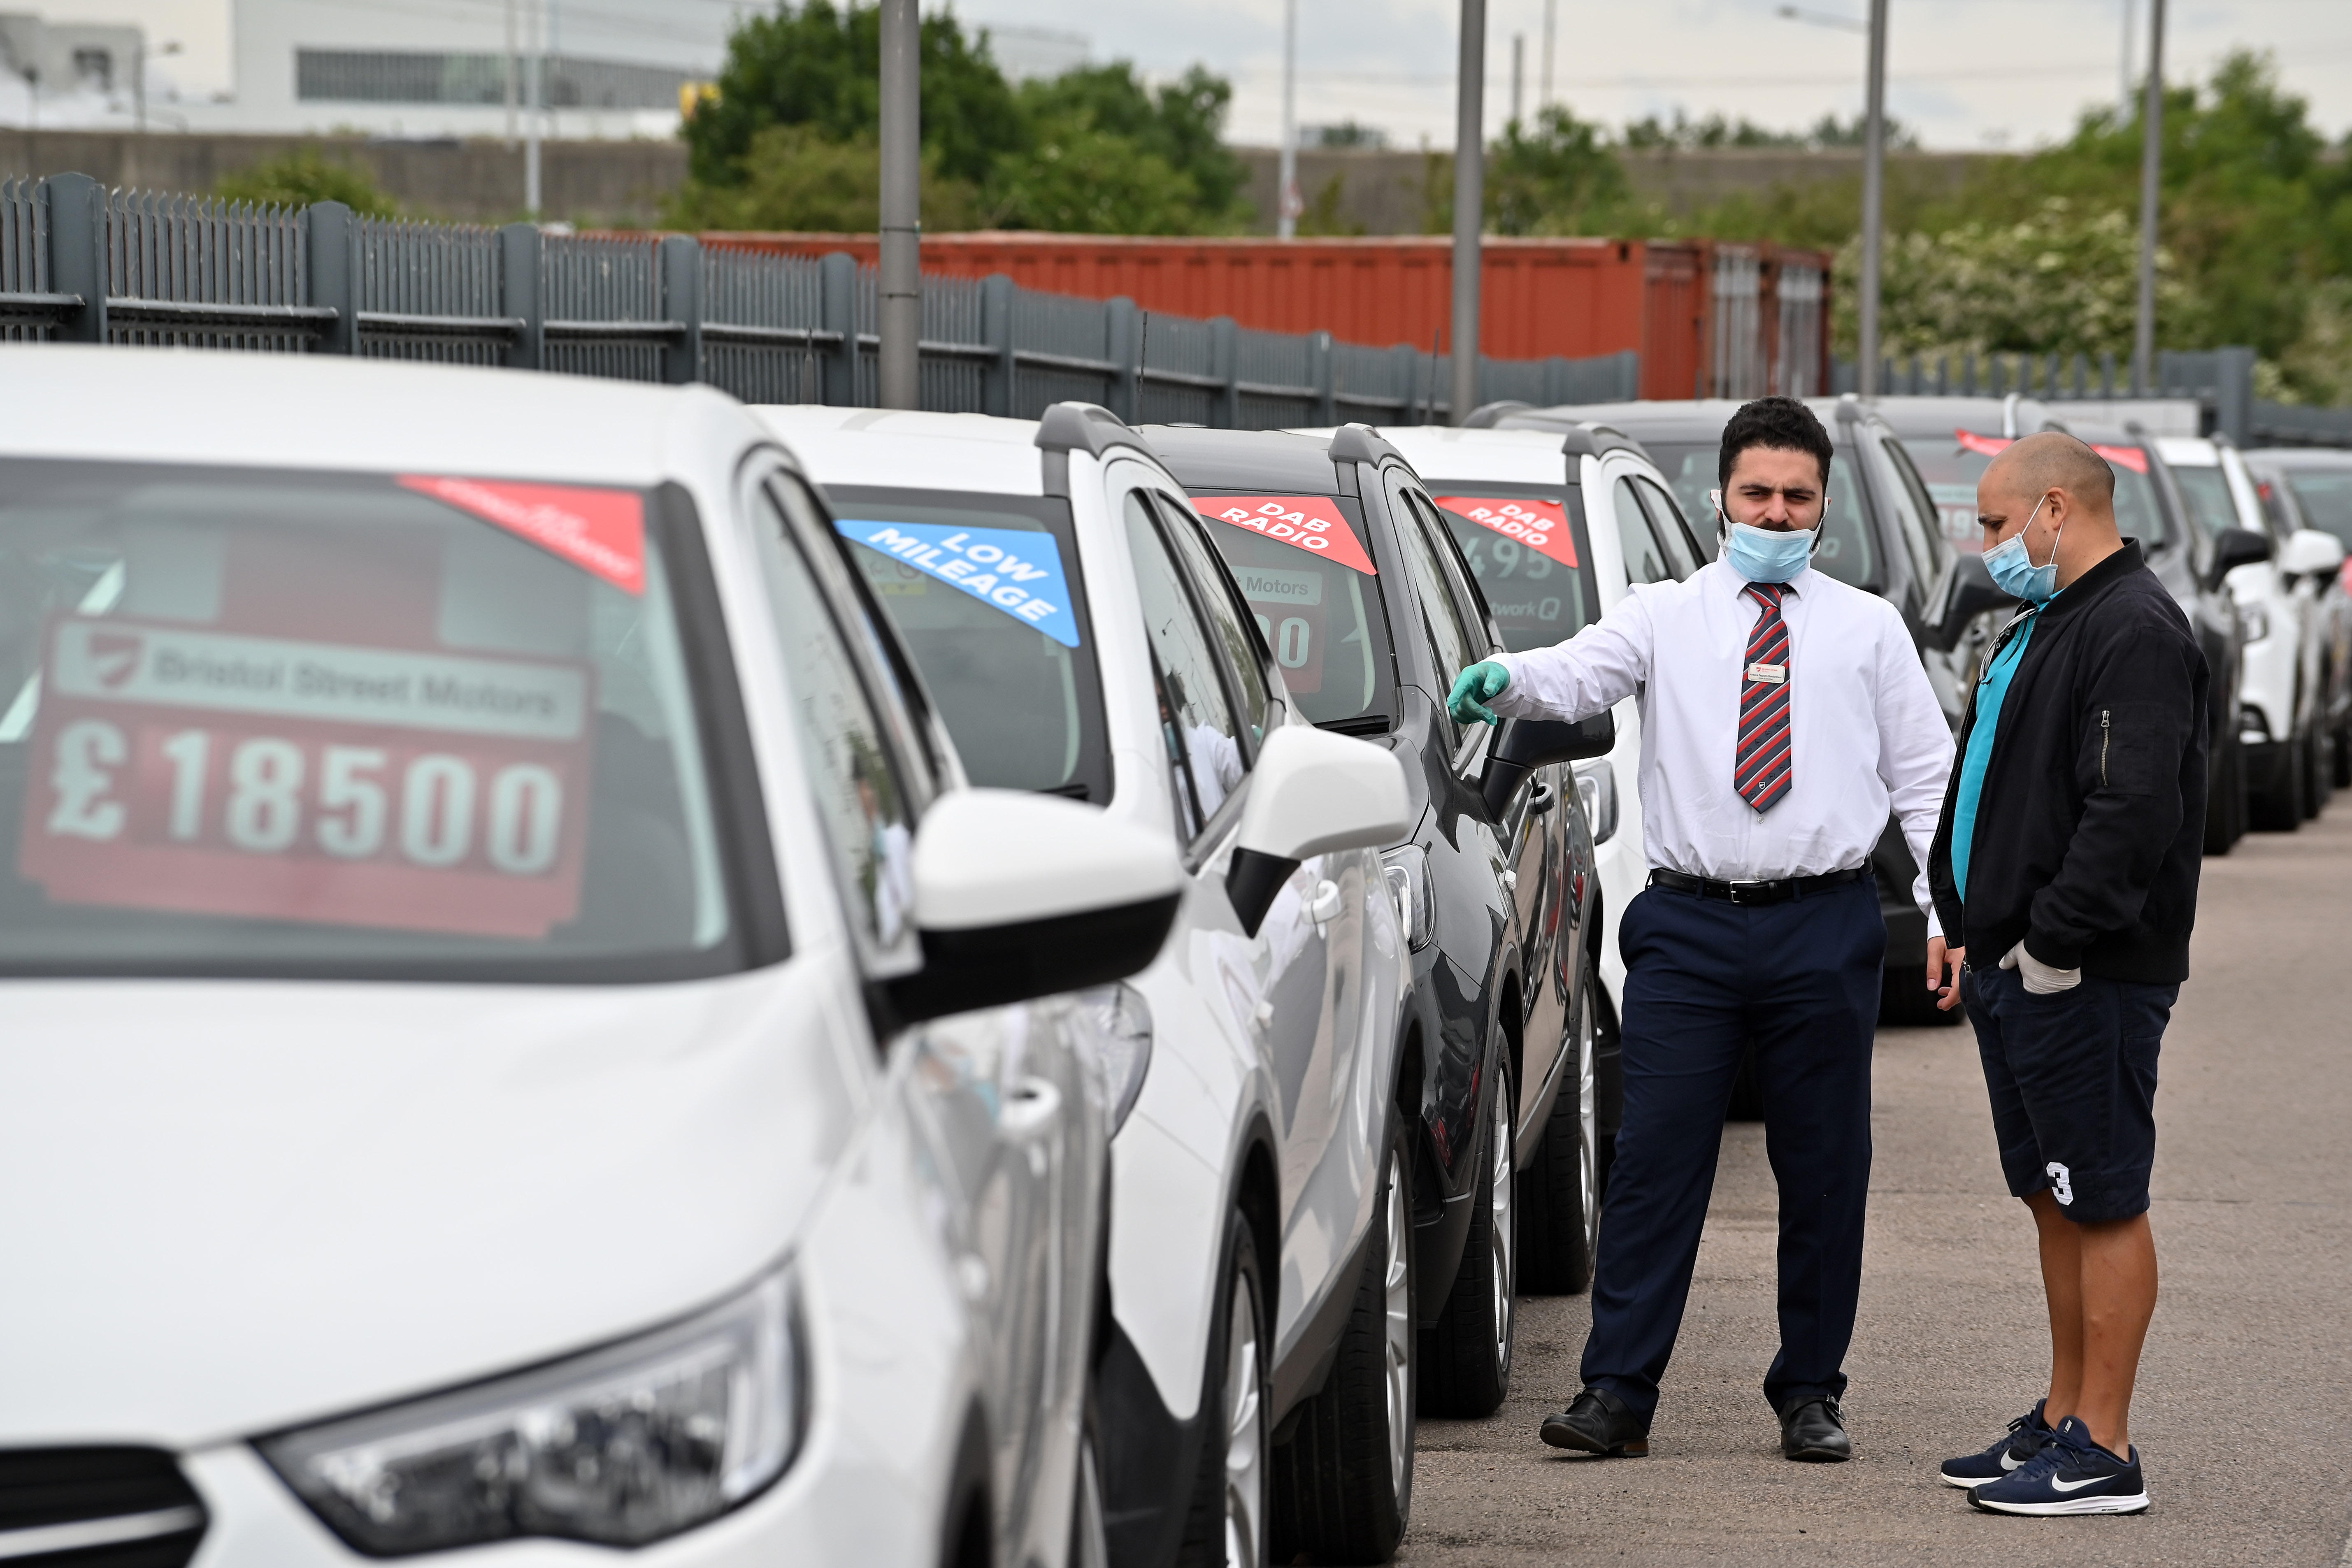 A car salesman (L) wearing PPE (personal protective equipment) including a face mask as a precautionary measure against COVID-19, shows customers vechiles parked on the forecourt of a recently re-opened Vauxhall car dealership in north London on June 4, 2020, as lockdown restrictions are eased during the noel coronavirus COVID-19 pandemic. - Car showrooms in England reopened this week as the UK government eased COVID-19 lockdown measures that have slammed the brakes on the industry. (Photo by JUSTIN TALLIS / AFP) (Photo by JUSTIN TALLIS/AFP via Getty Images)